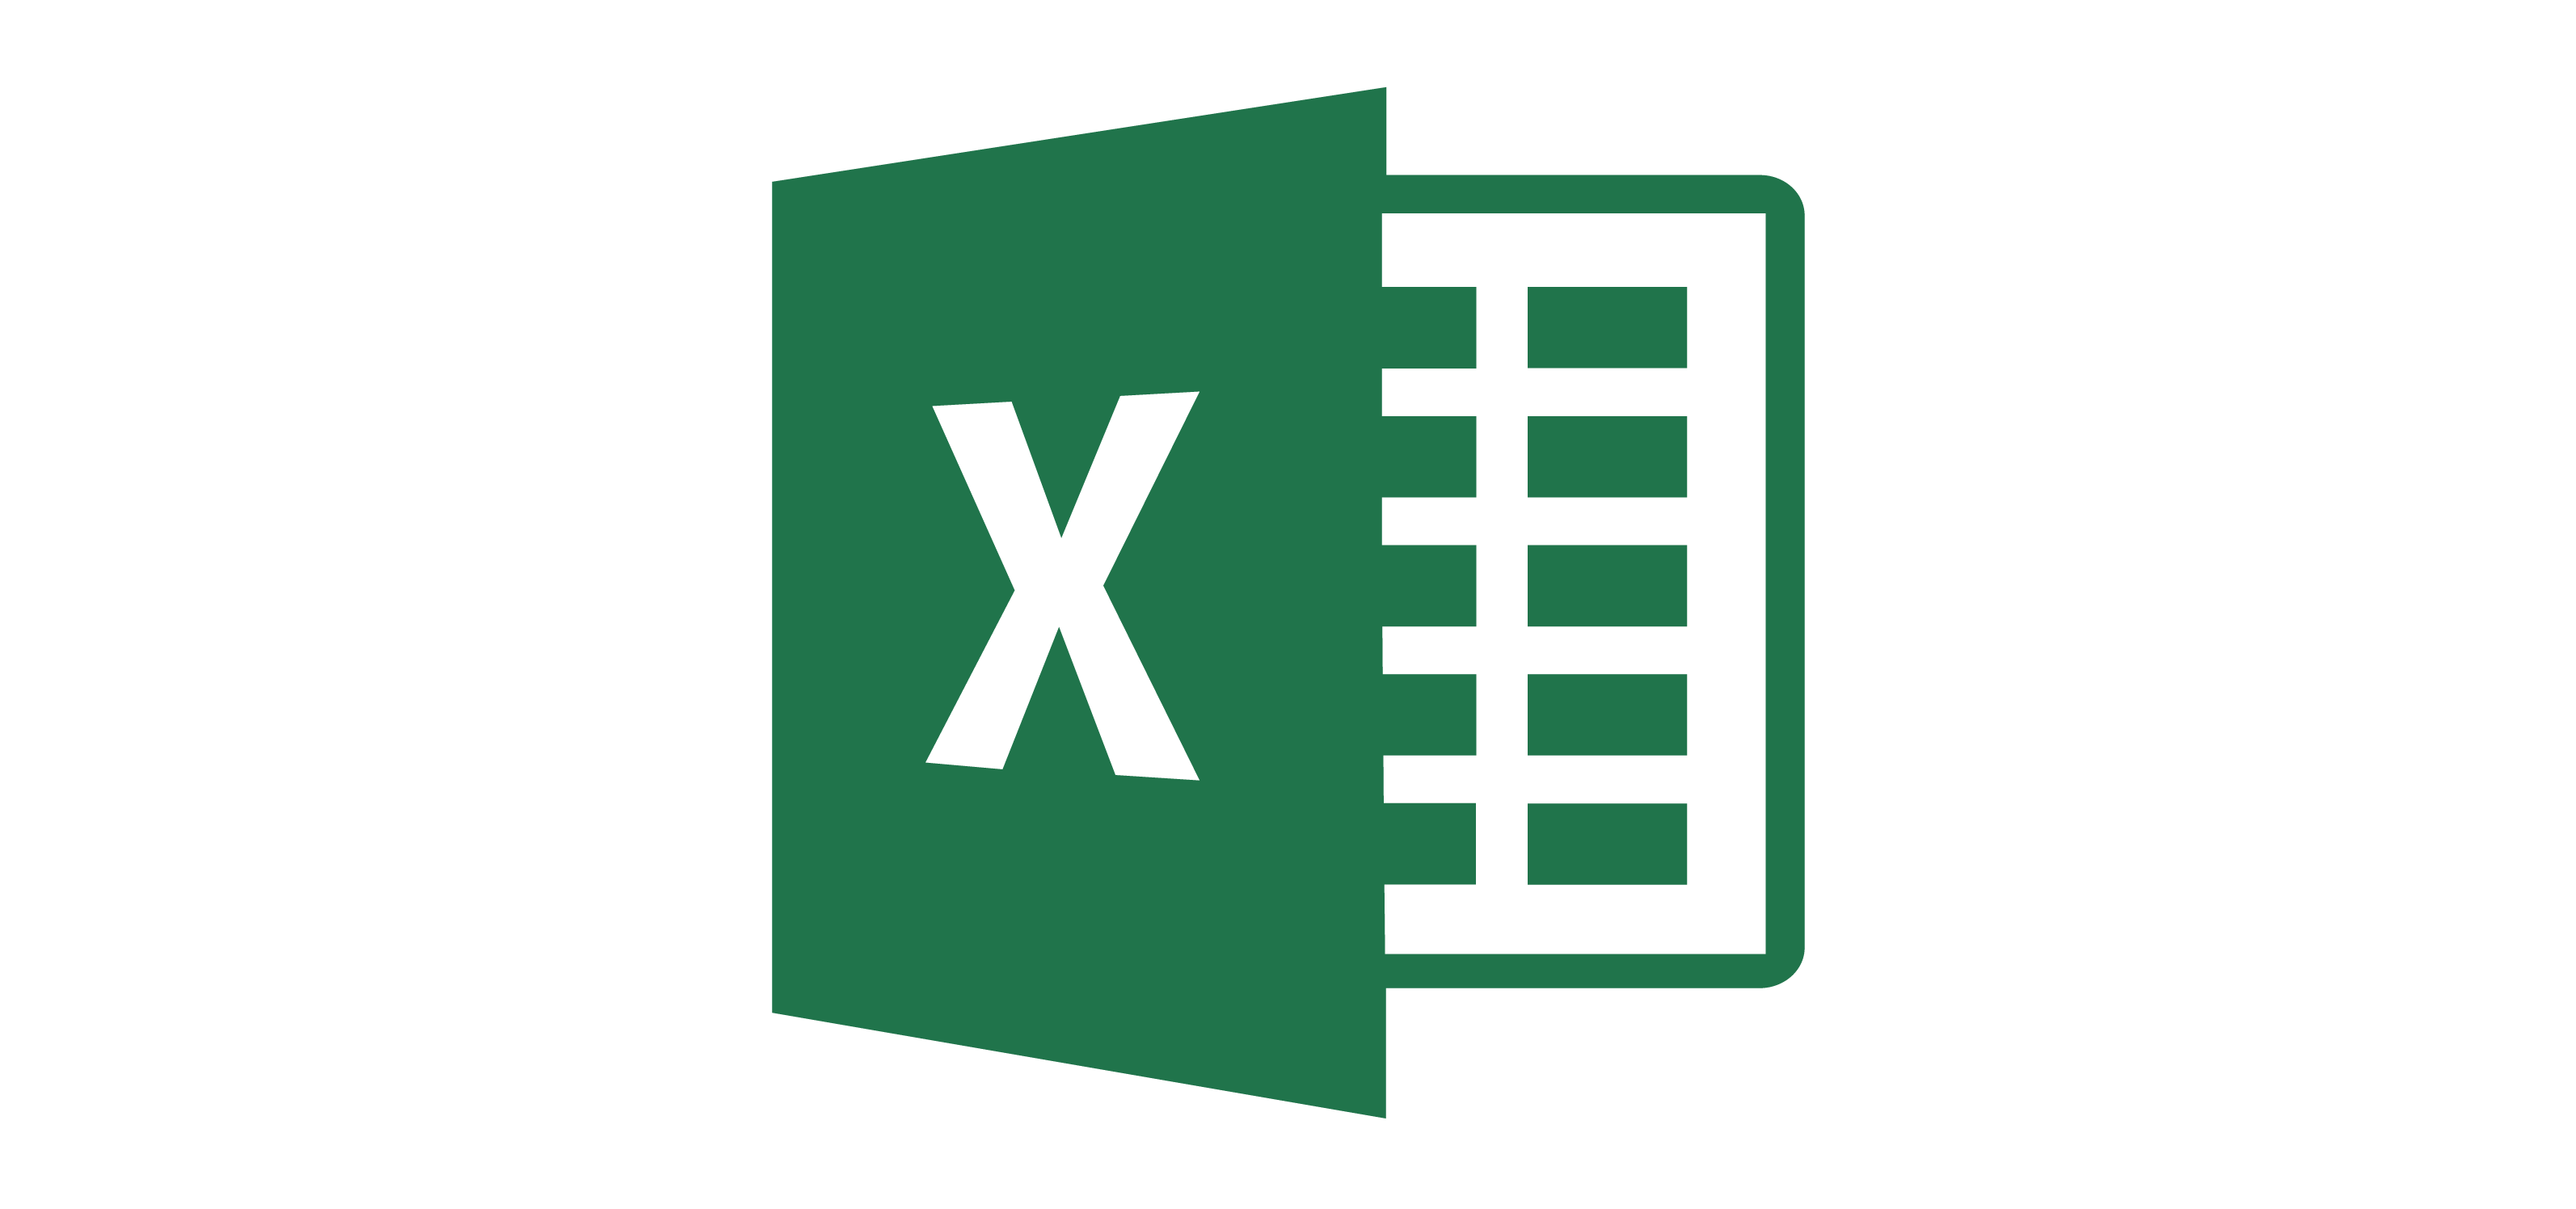 Microsoft Excel Computer Icons Spreadsheet Computer Software.